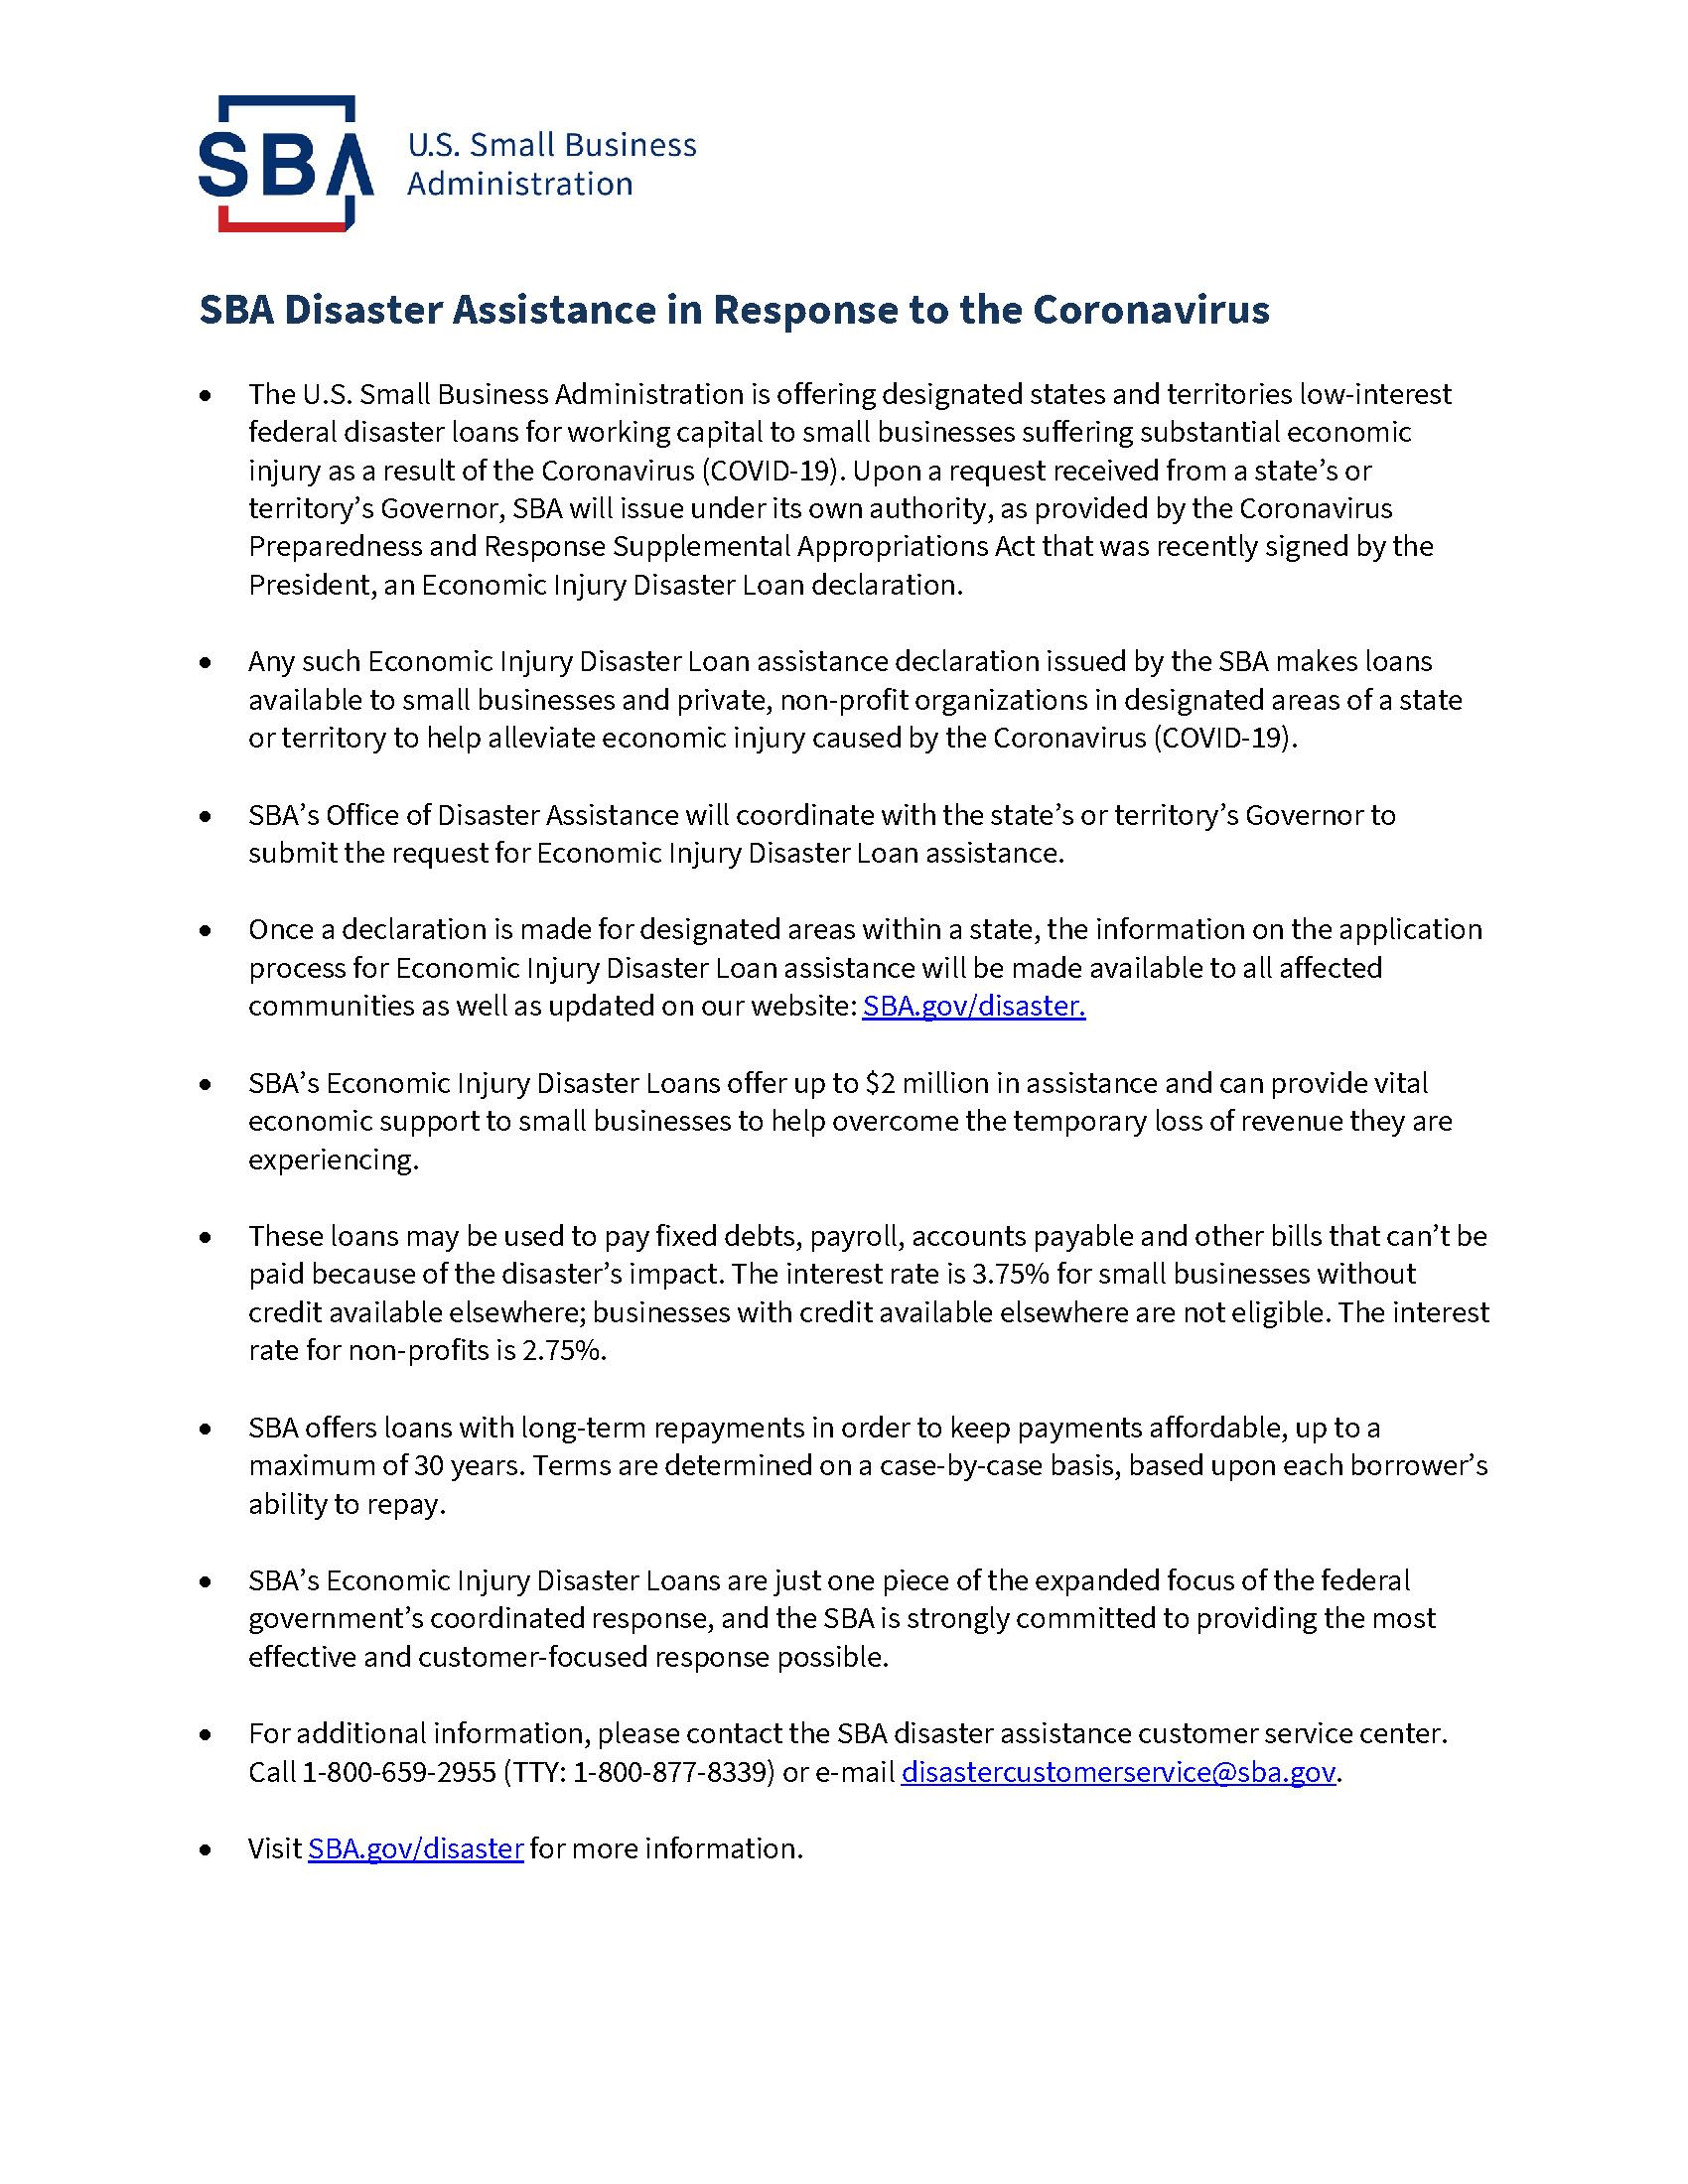 HANDOUT_SBA Disaster Assistance_Resources for Businesses (002)